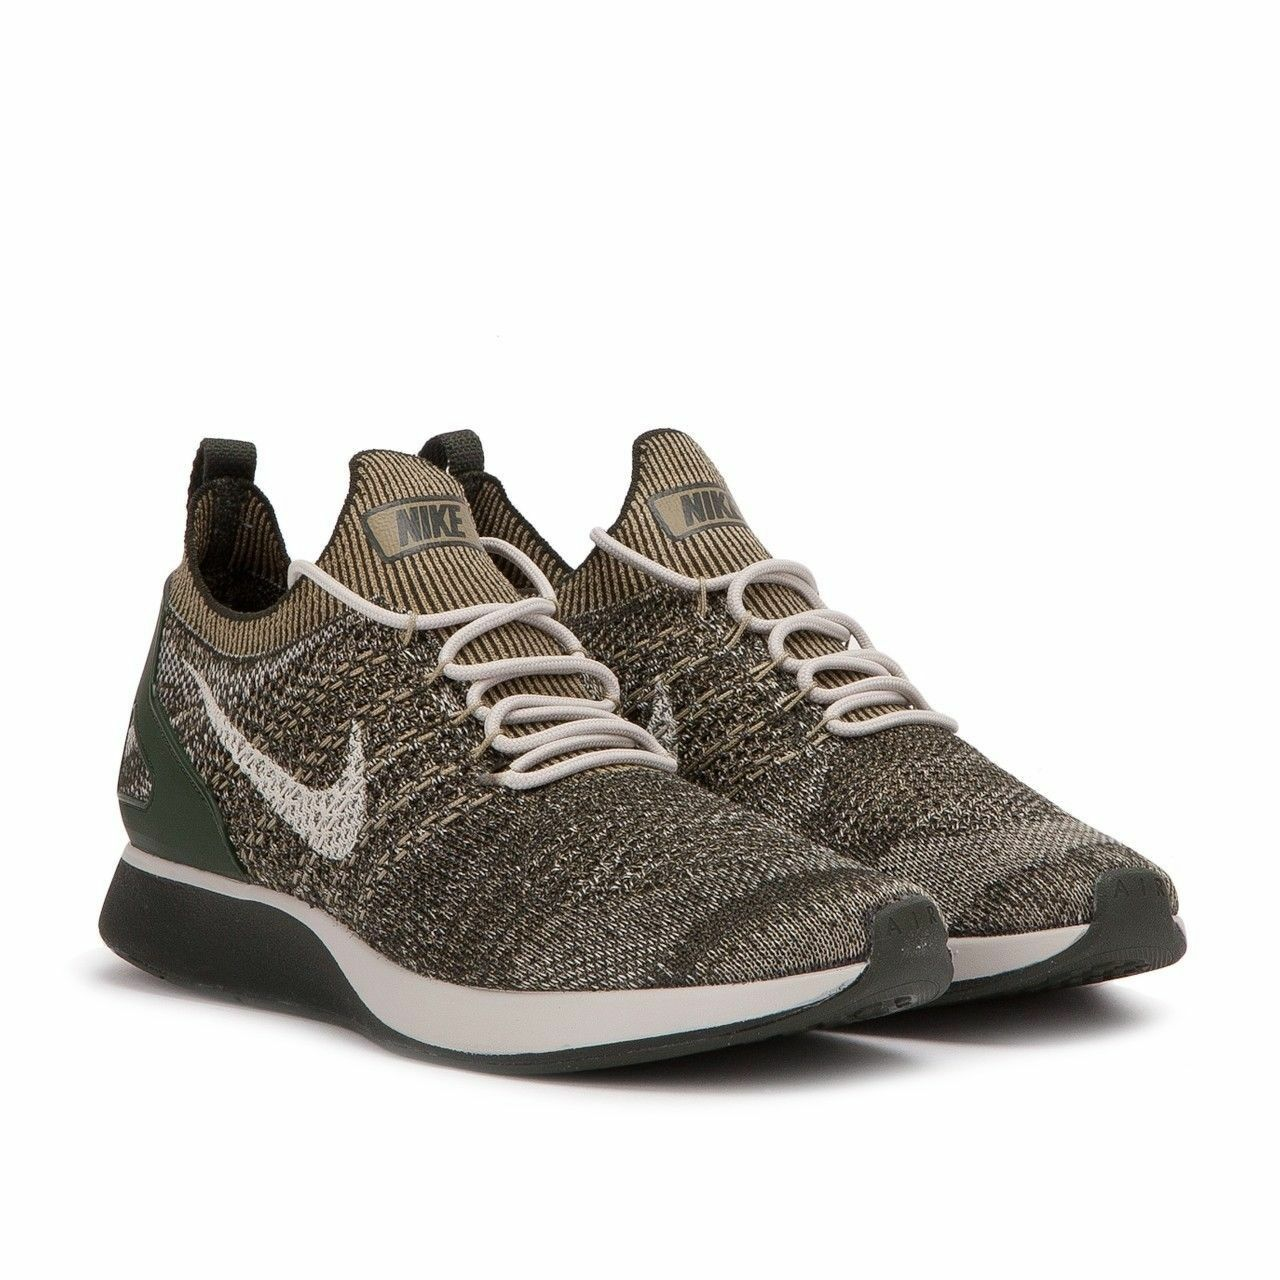 NIKE AIR ZOOM MARIAH FLYKMIT RACER SEQUOIA NATURAL OLIVE #918264-301